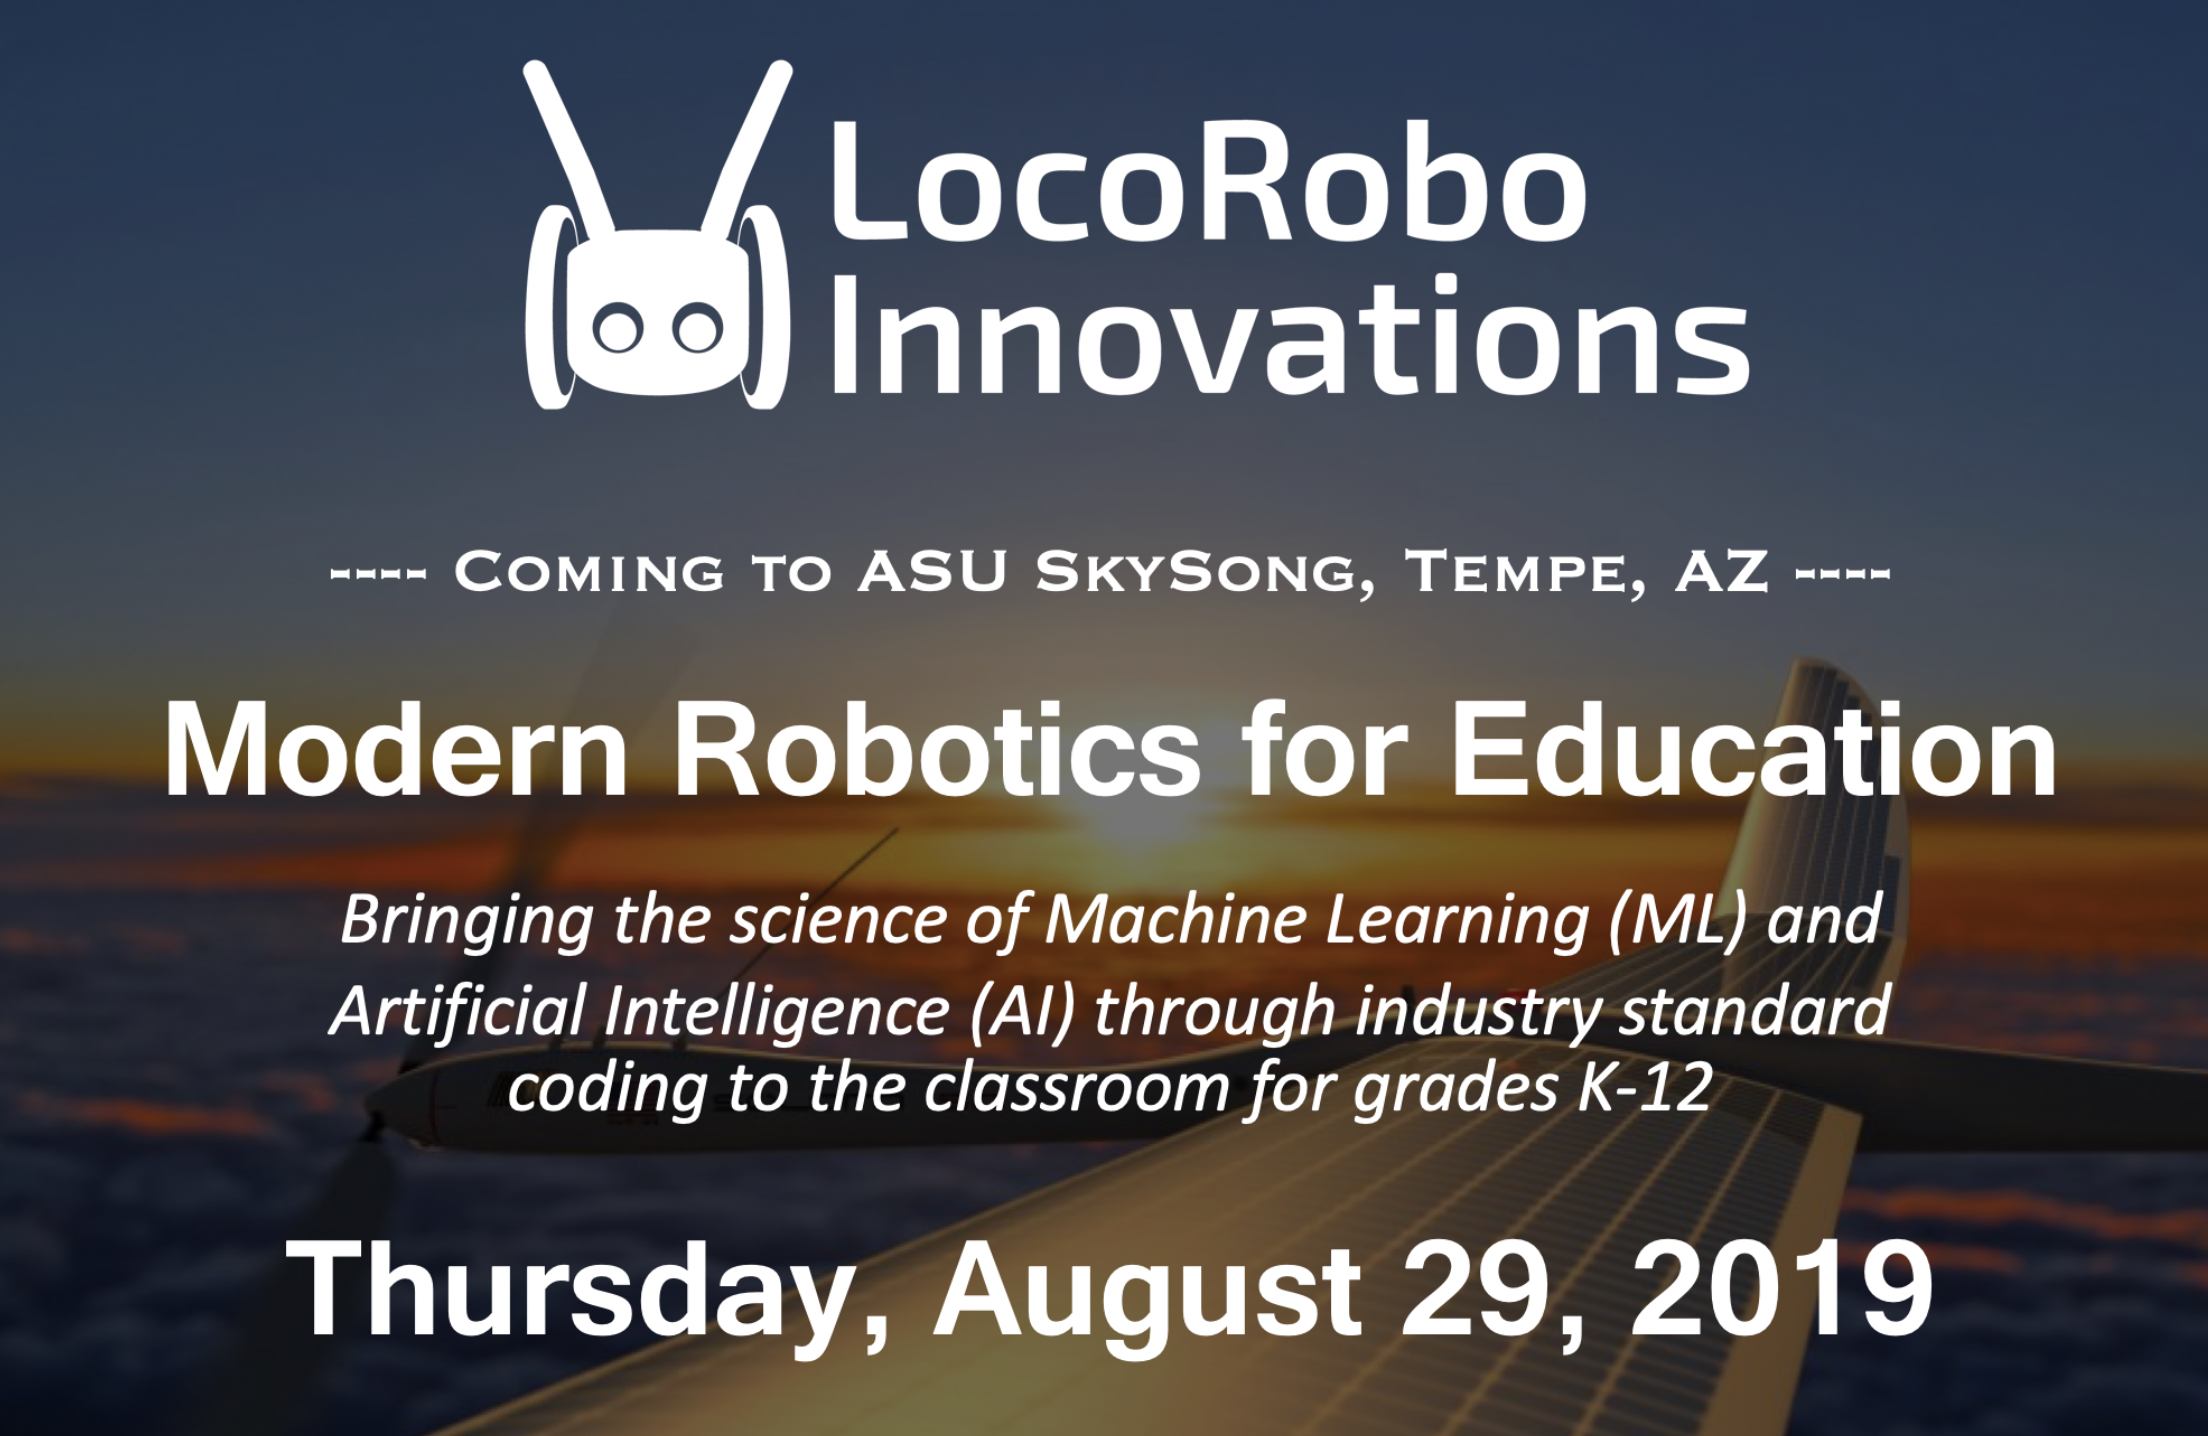 LocoRobo: Modern Robotics for Education